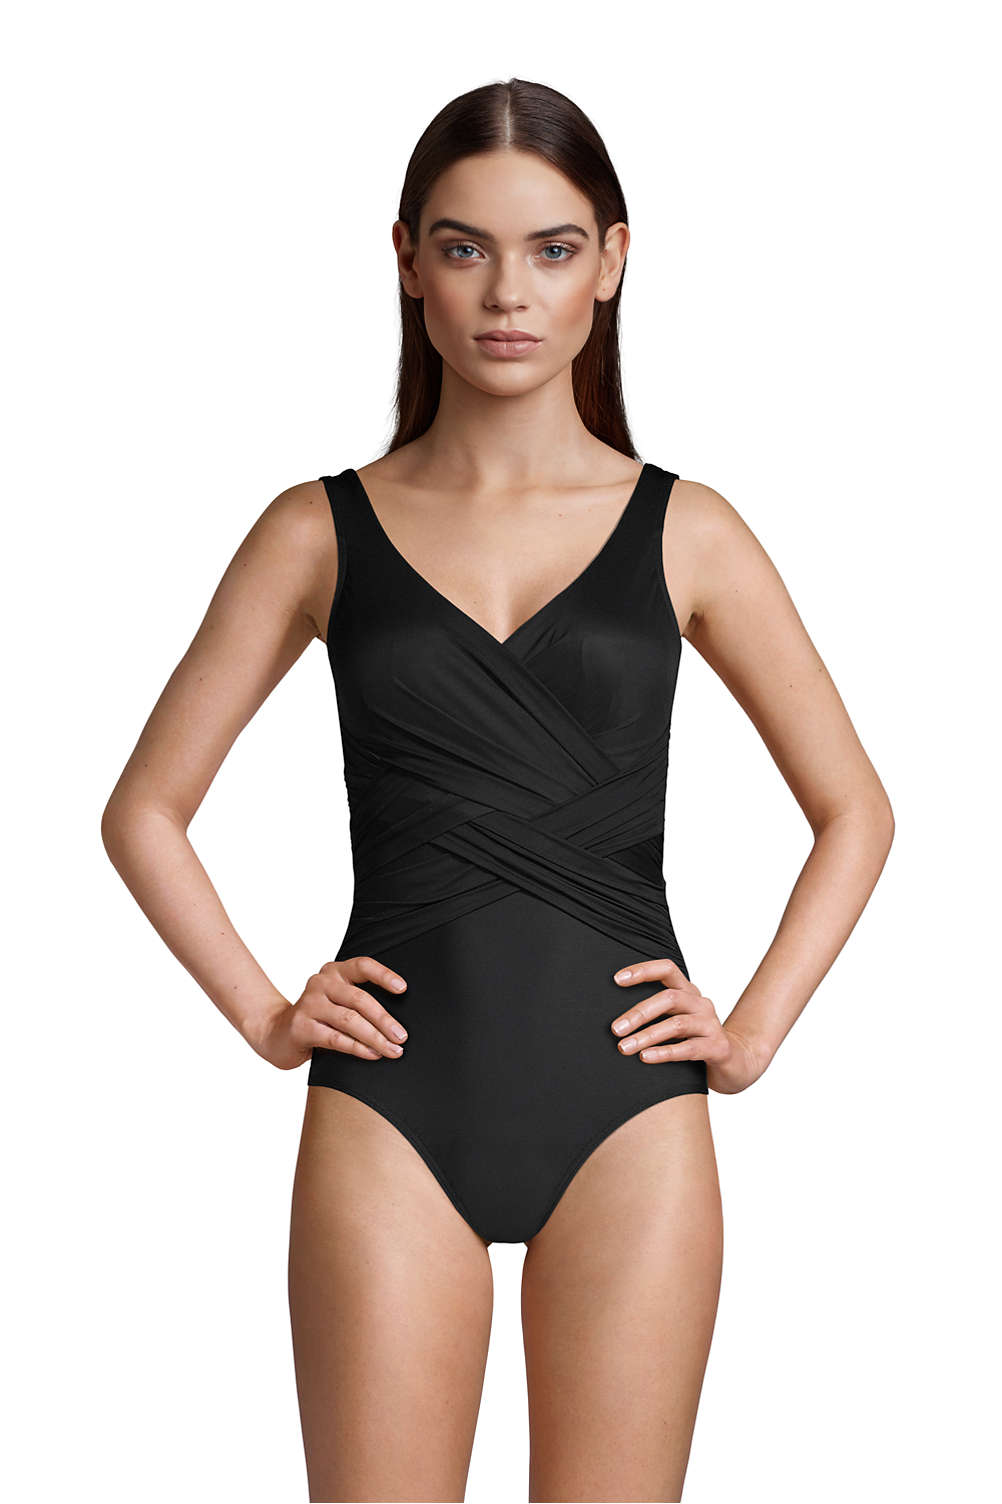 2c9a78756bcf8 Women's Slender Wrap One Piece Swimsuit with Tummy Control from Lands' End